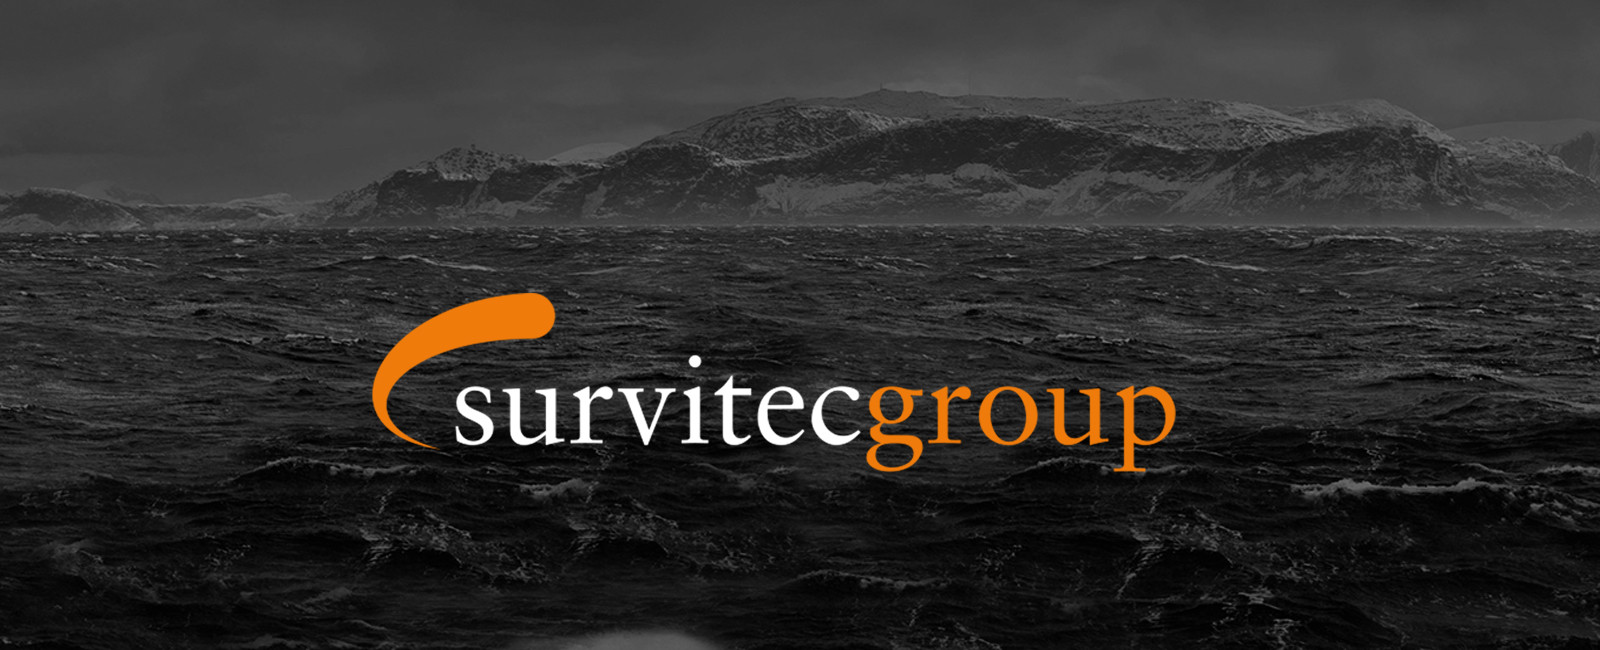 Survitec Group: marketing & communications